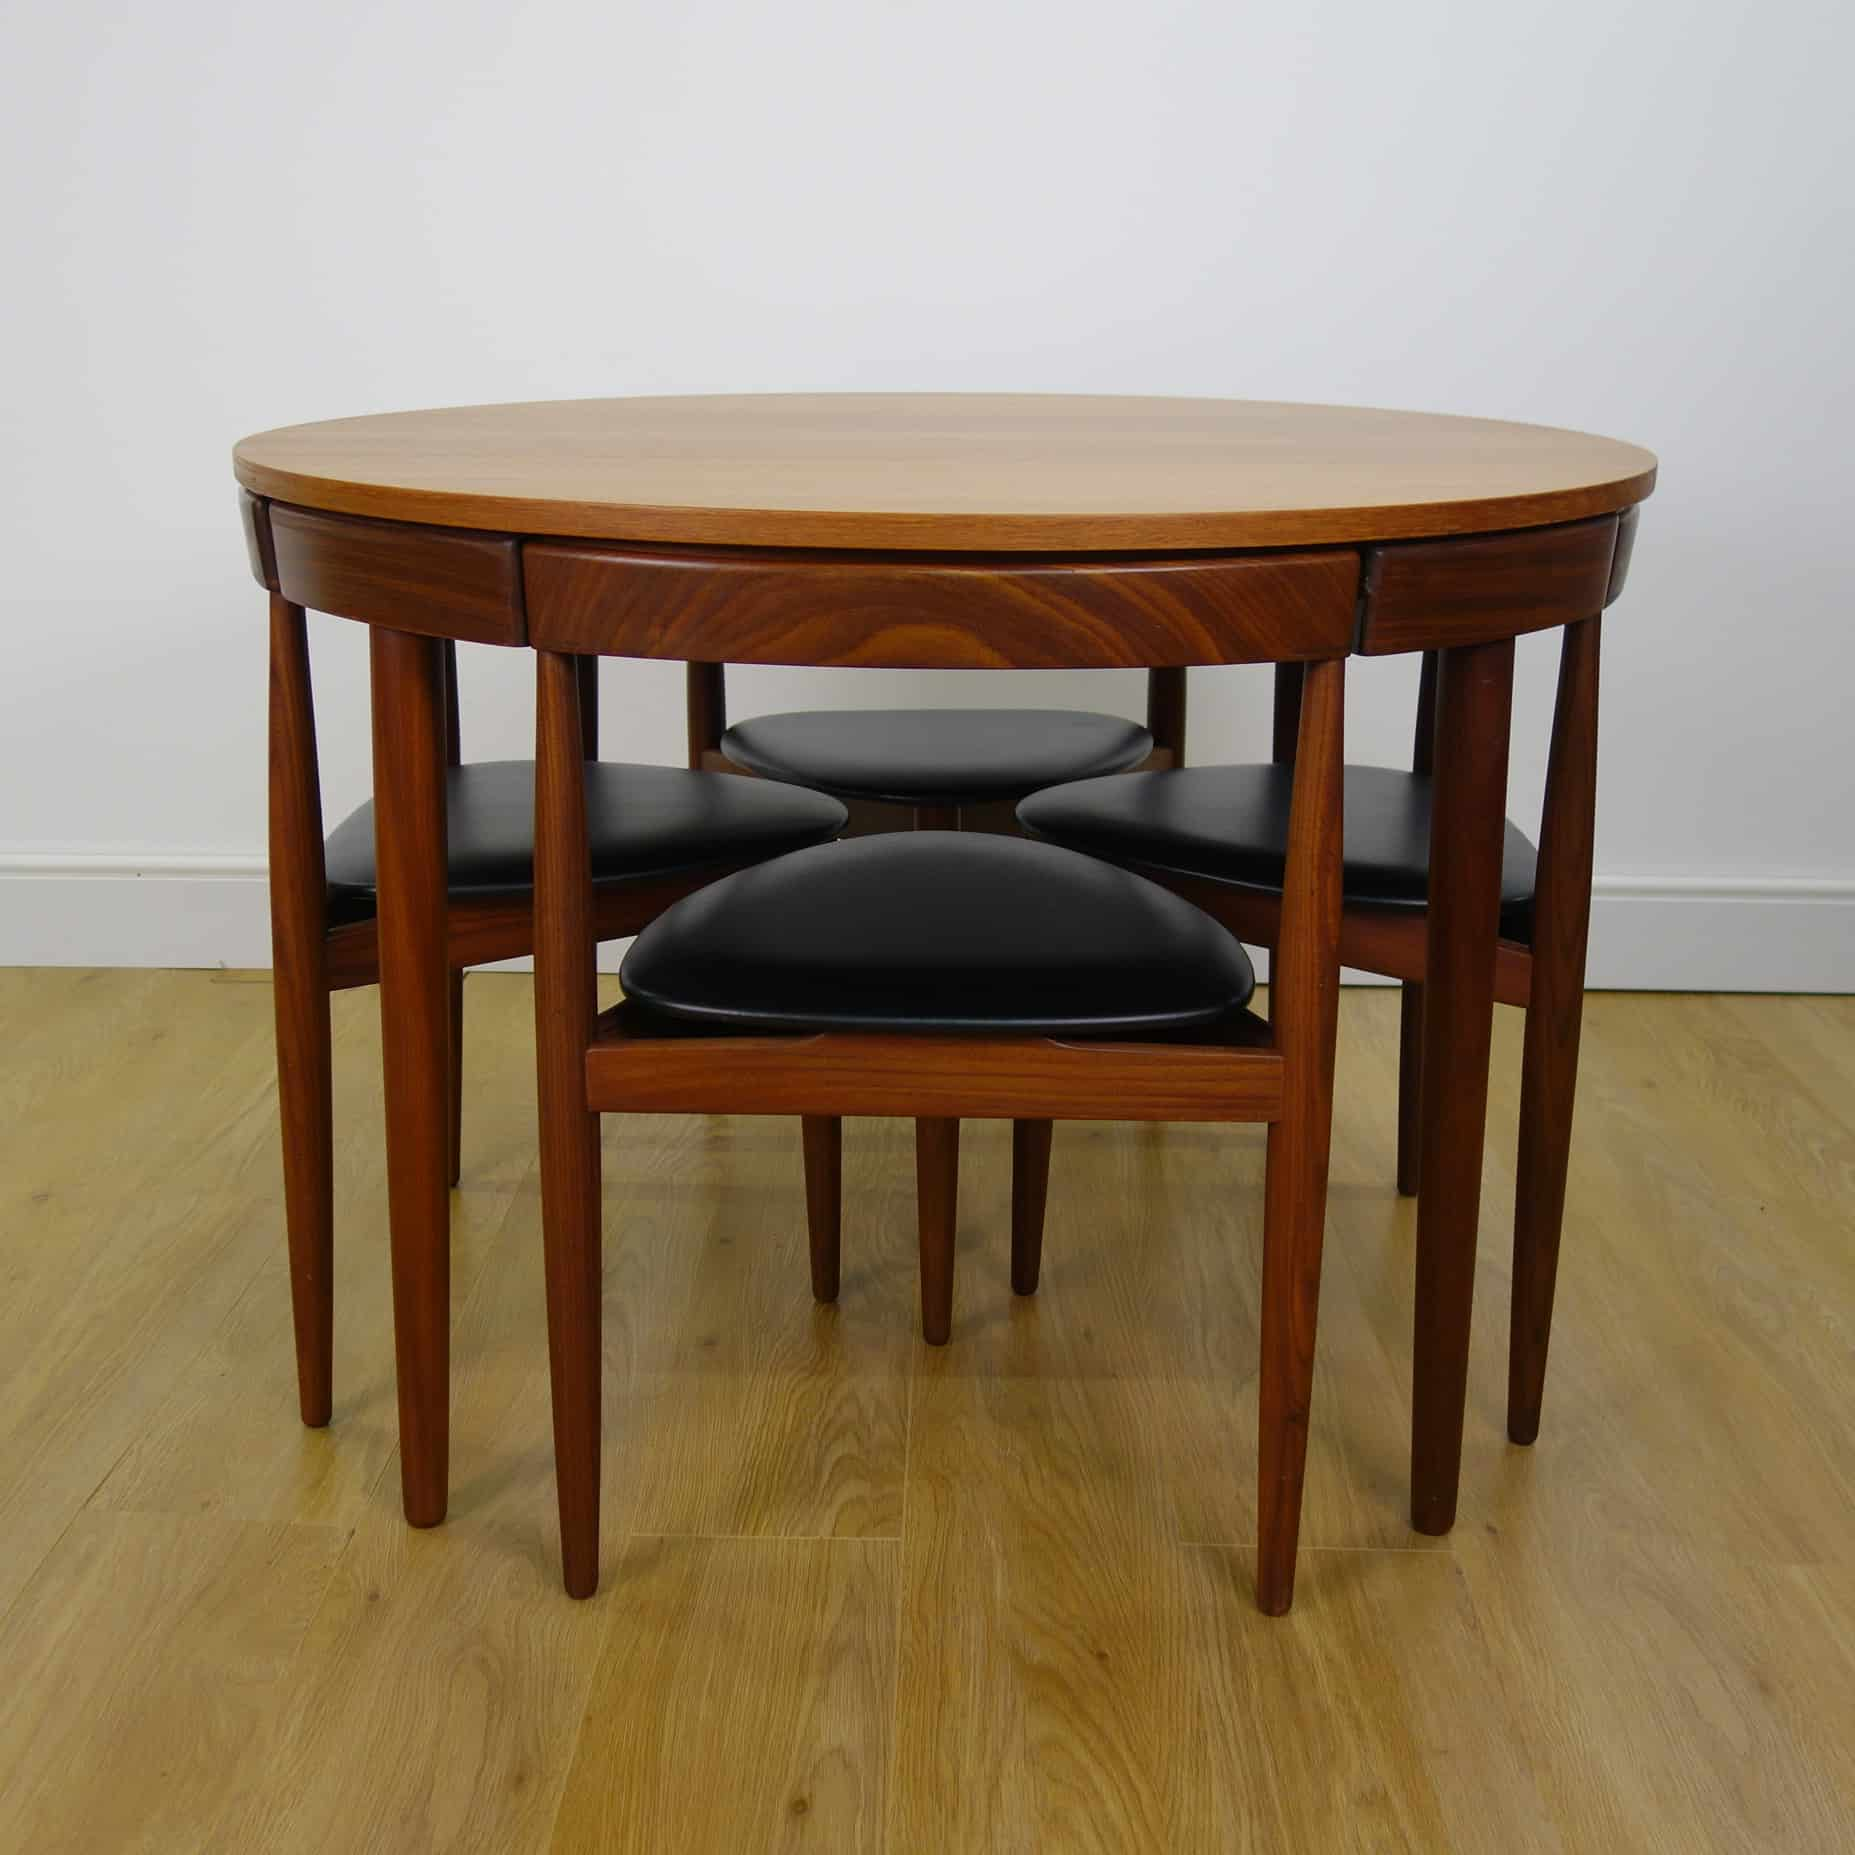 Danish teak dining table and chairs by Frem Rojle